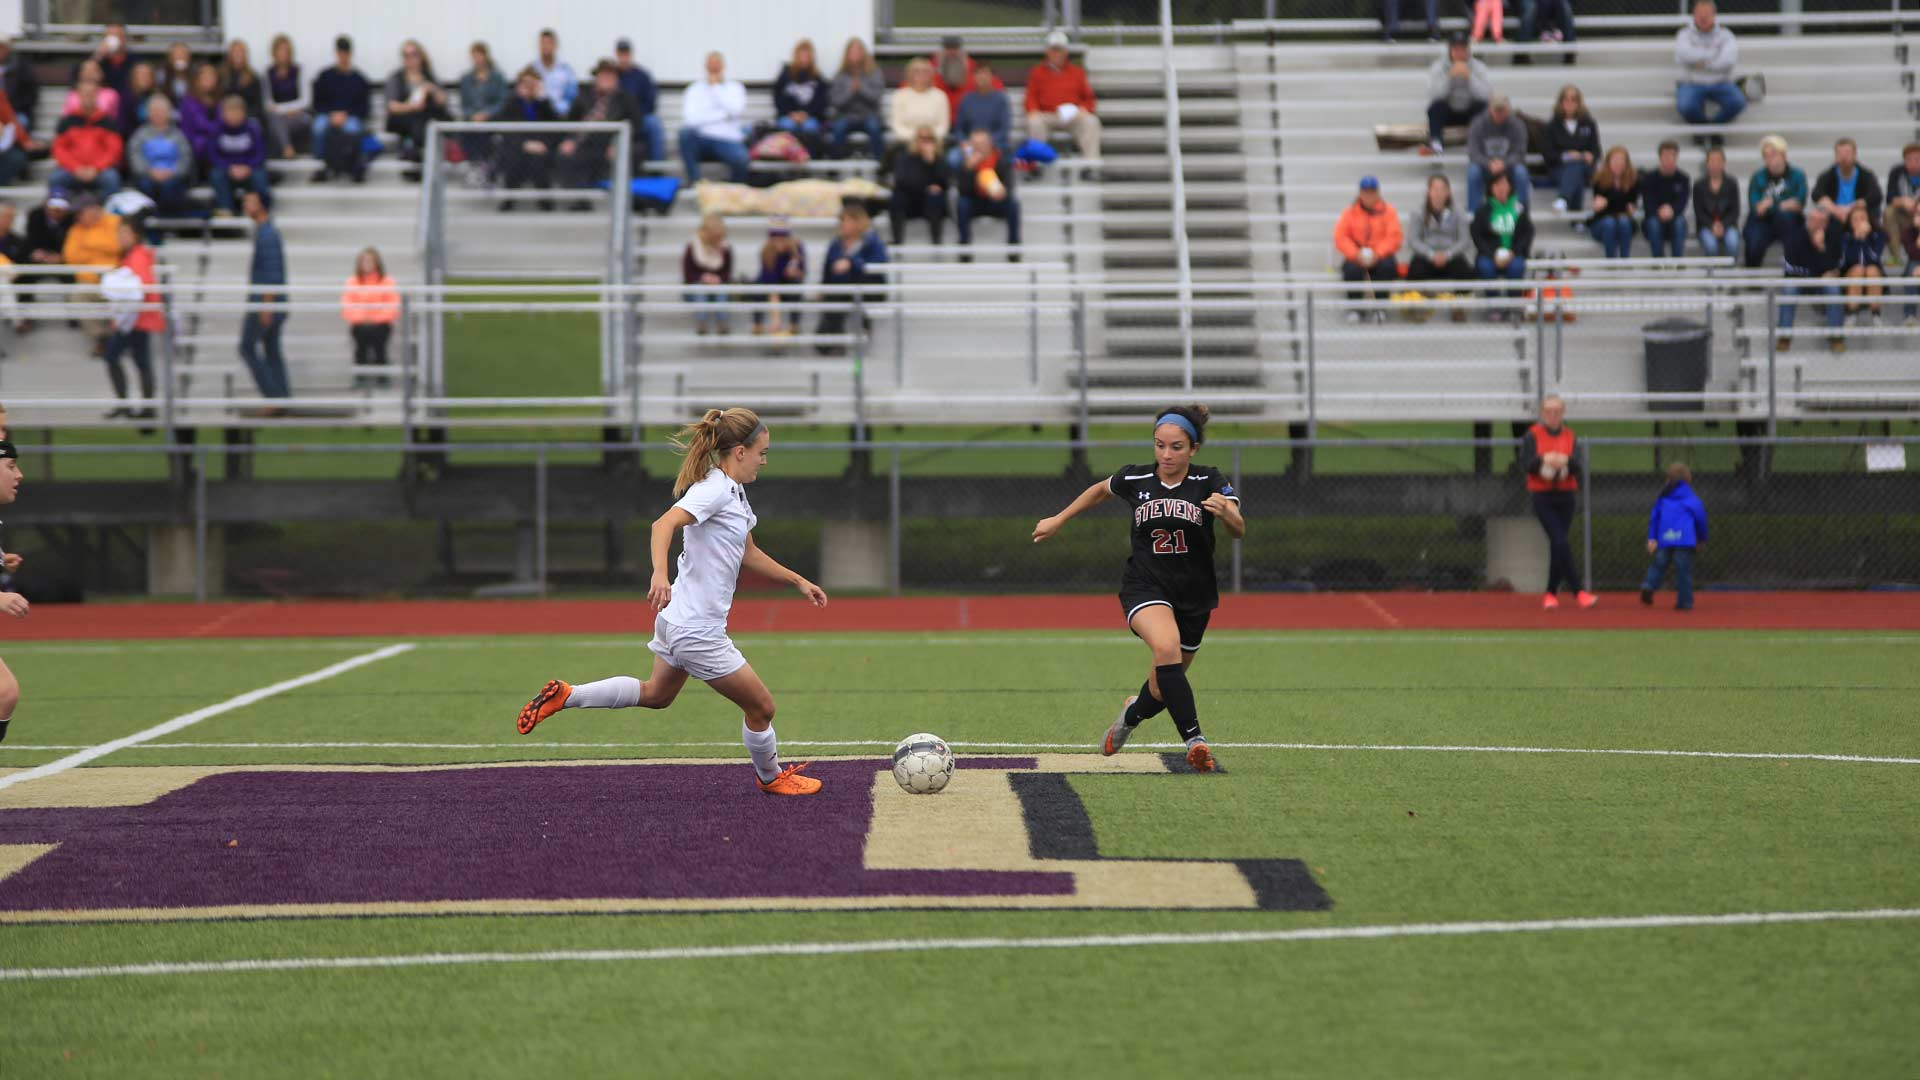 Houghton Women Soccer Player Running with ball across midfield line